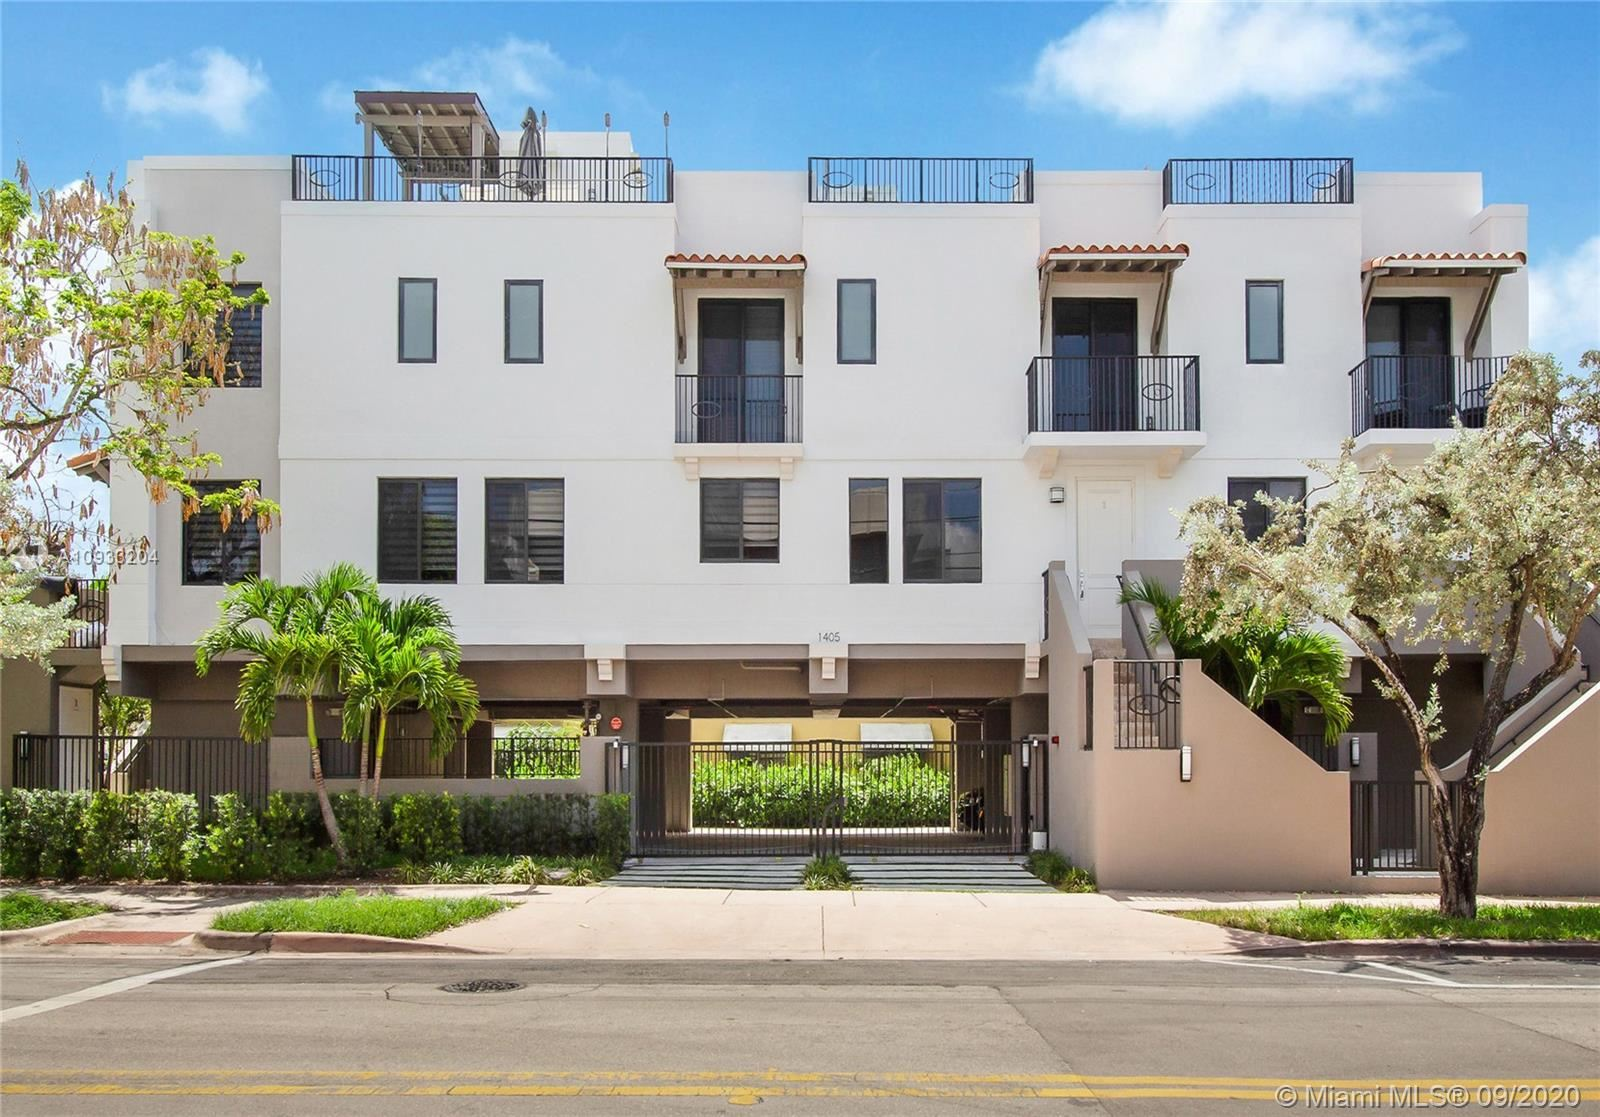 1405 Galiano St #4, Coral Gables, FL 33134 - #: A10933204